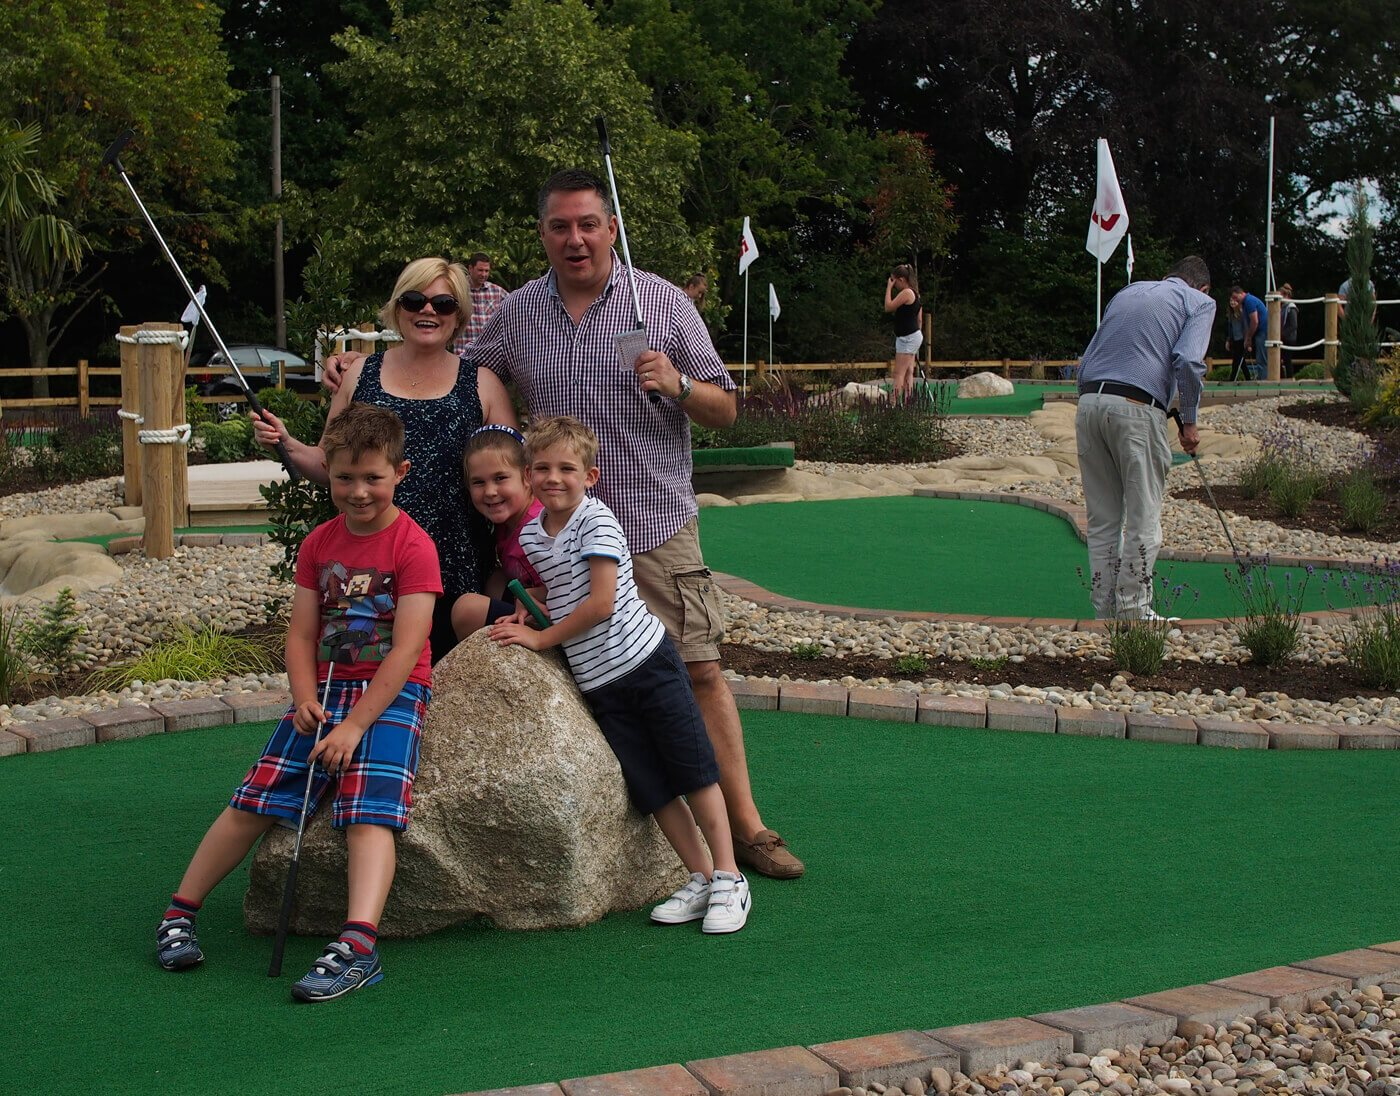 adventure-golf-players